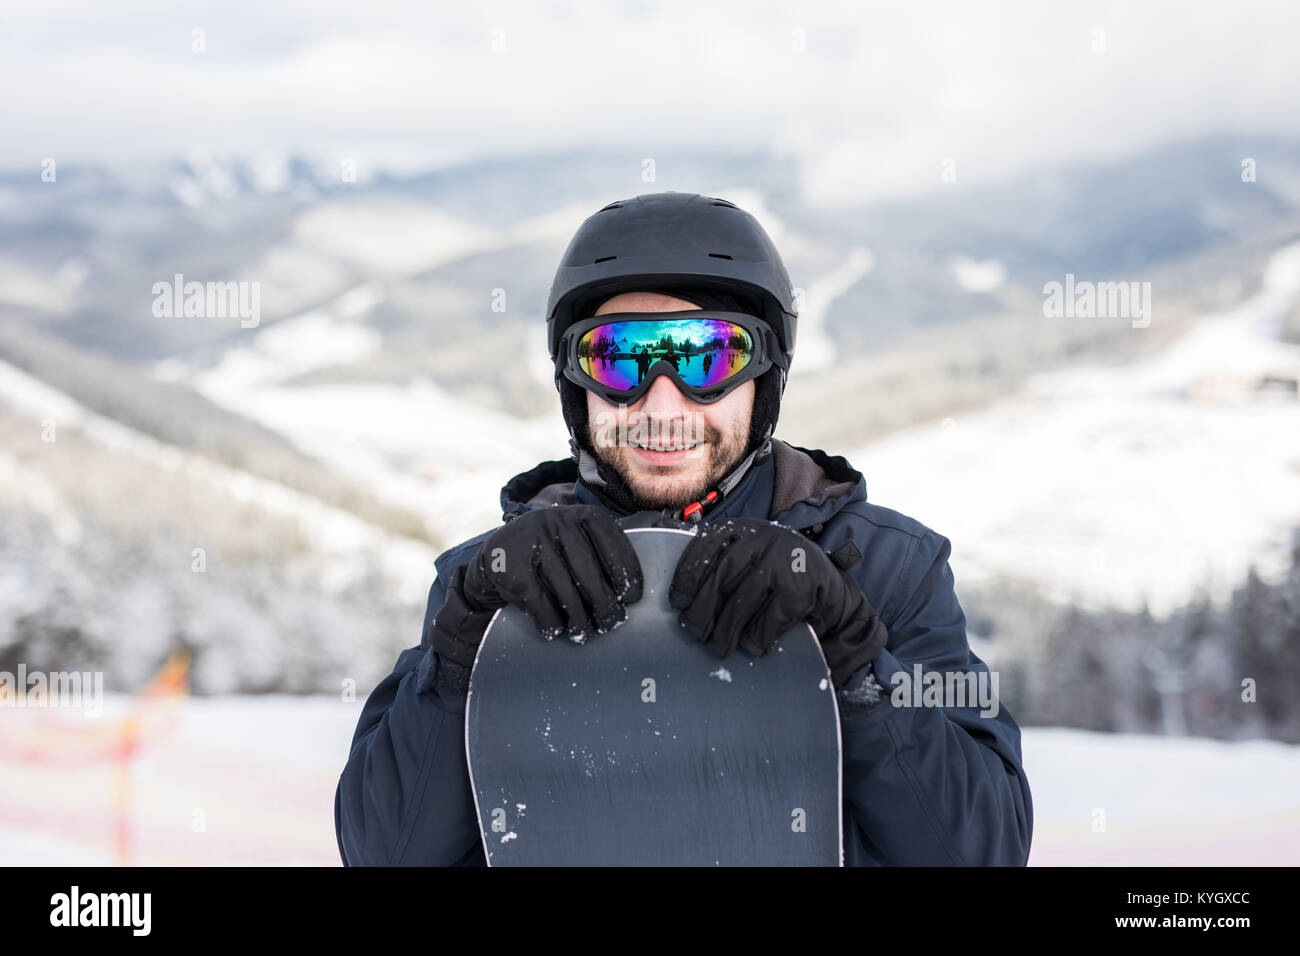 Snowboarder in ski suit and helmet with snowboard - Stock Image